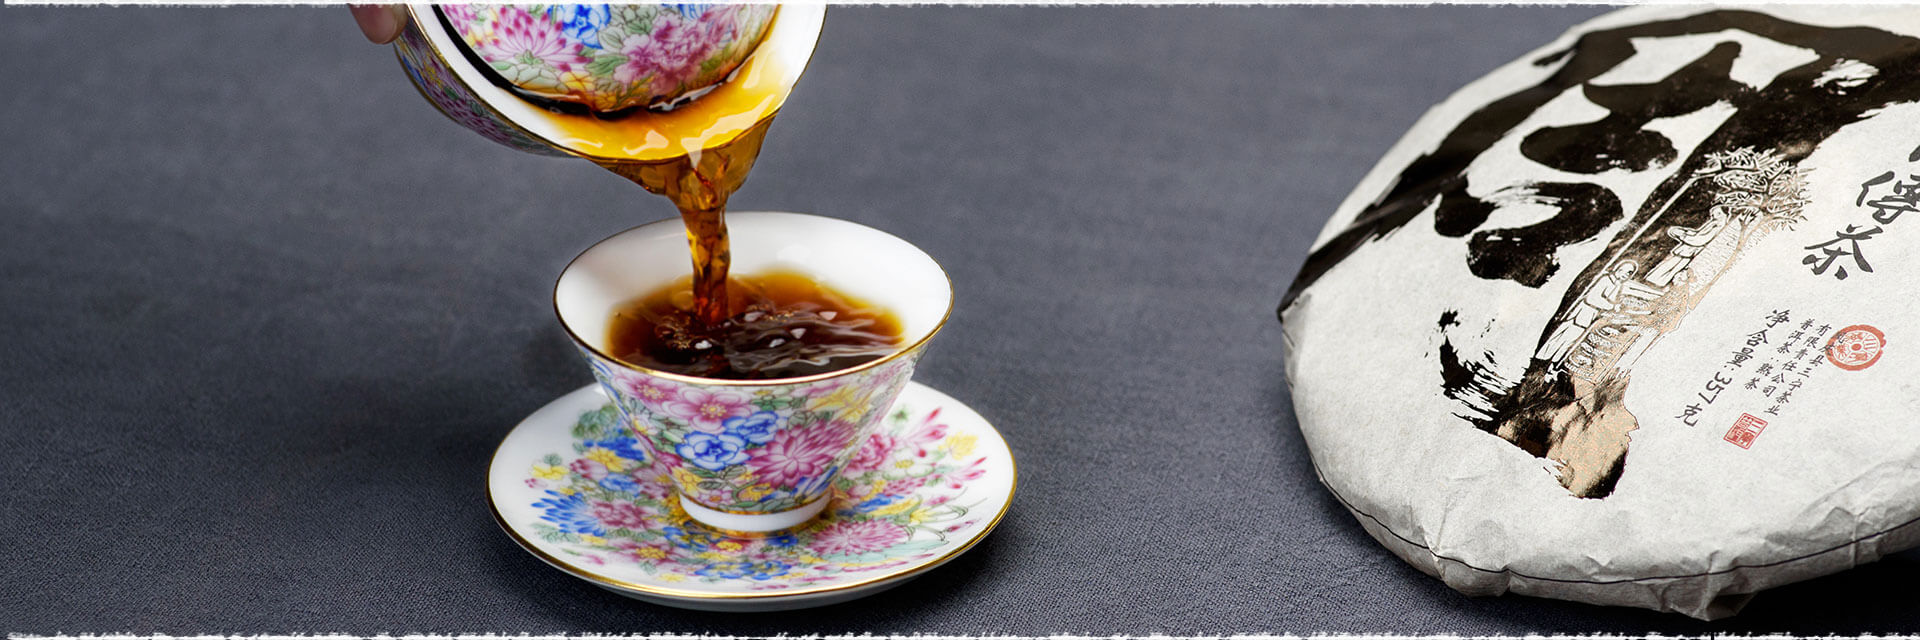 Ripe Puerh Tea Knowledge